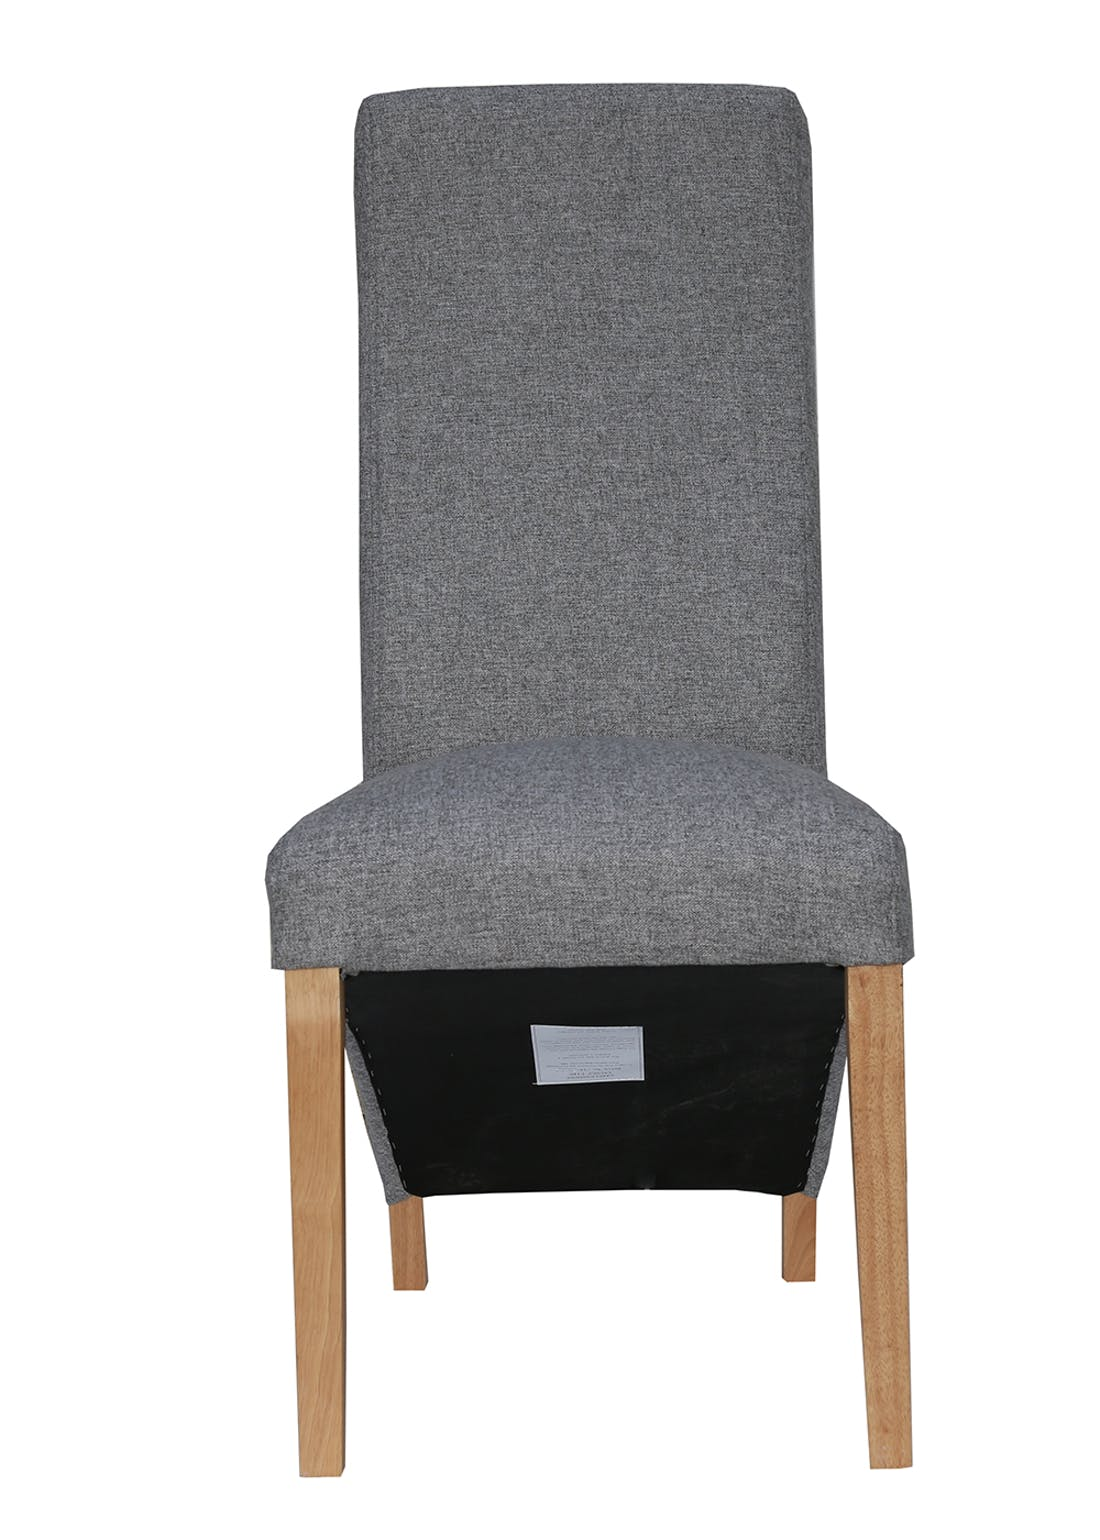 Interiors Direct 2 Pack Arundel Wave Back Fabric Chairs (105cm x 65cm x 46cm)